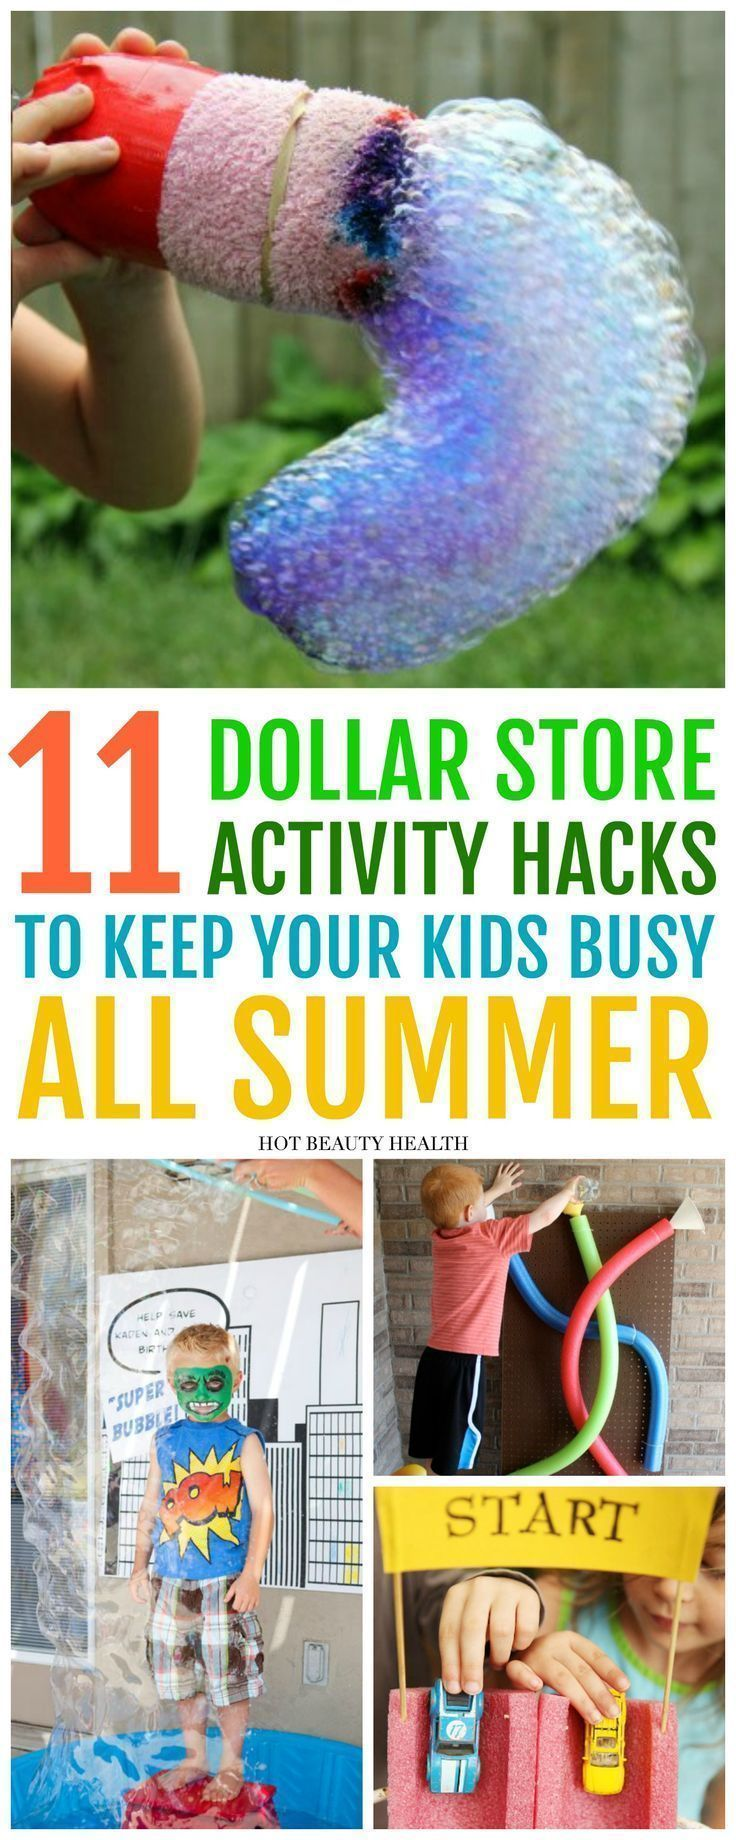 11 Fun Activities to DIY This Summer From The Dollar Store - Hot Beauty Health -   16 diy projects Dollar Store kids ideas